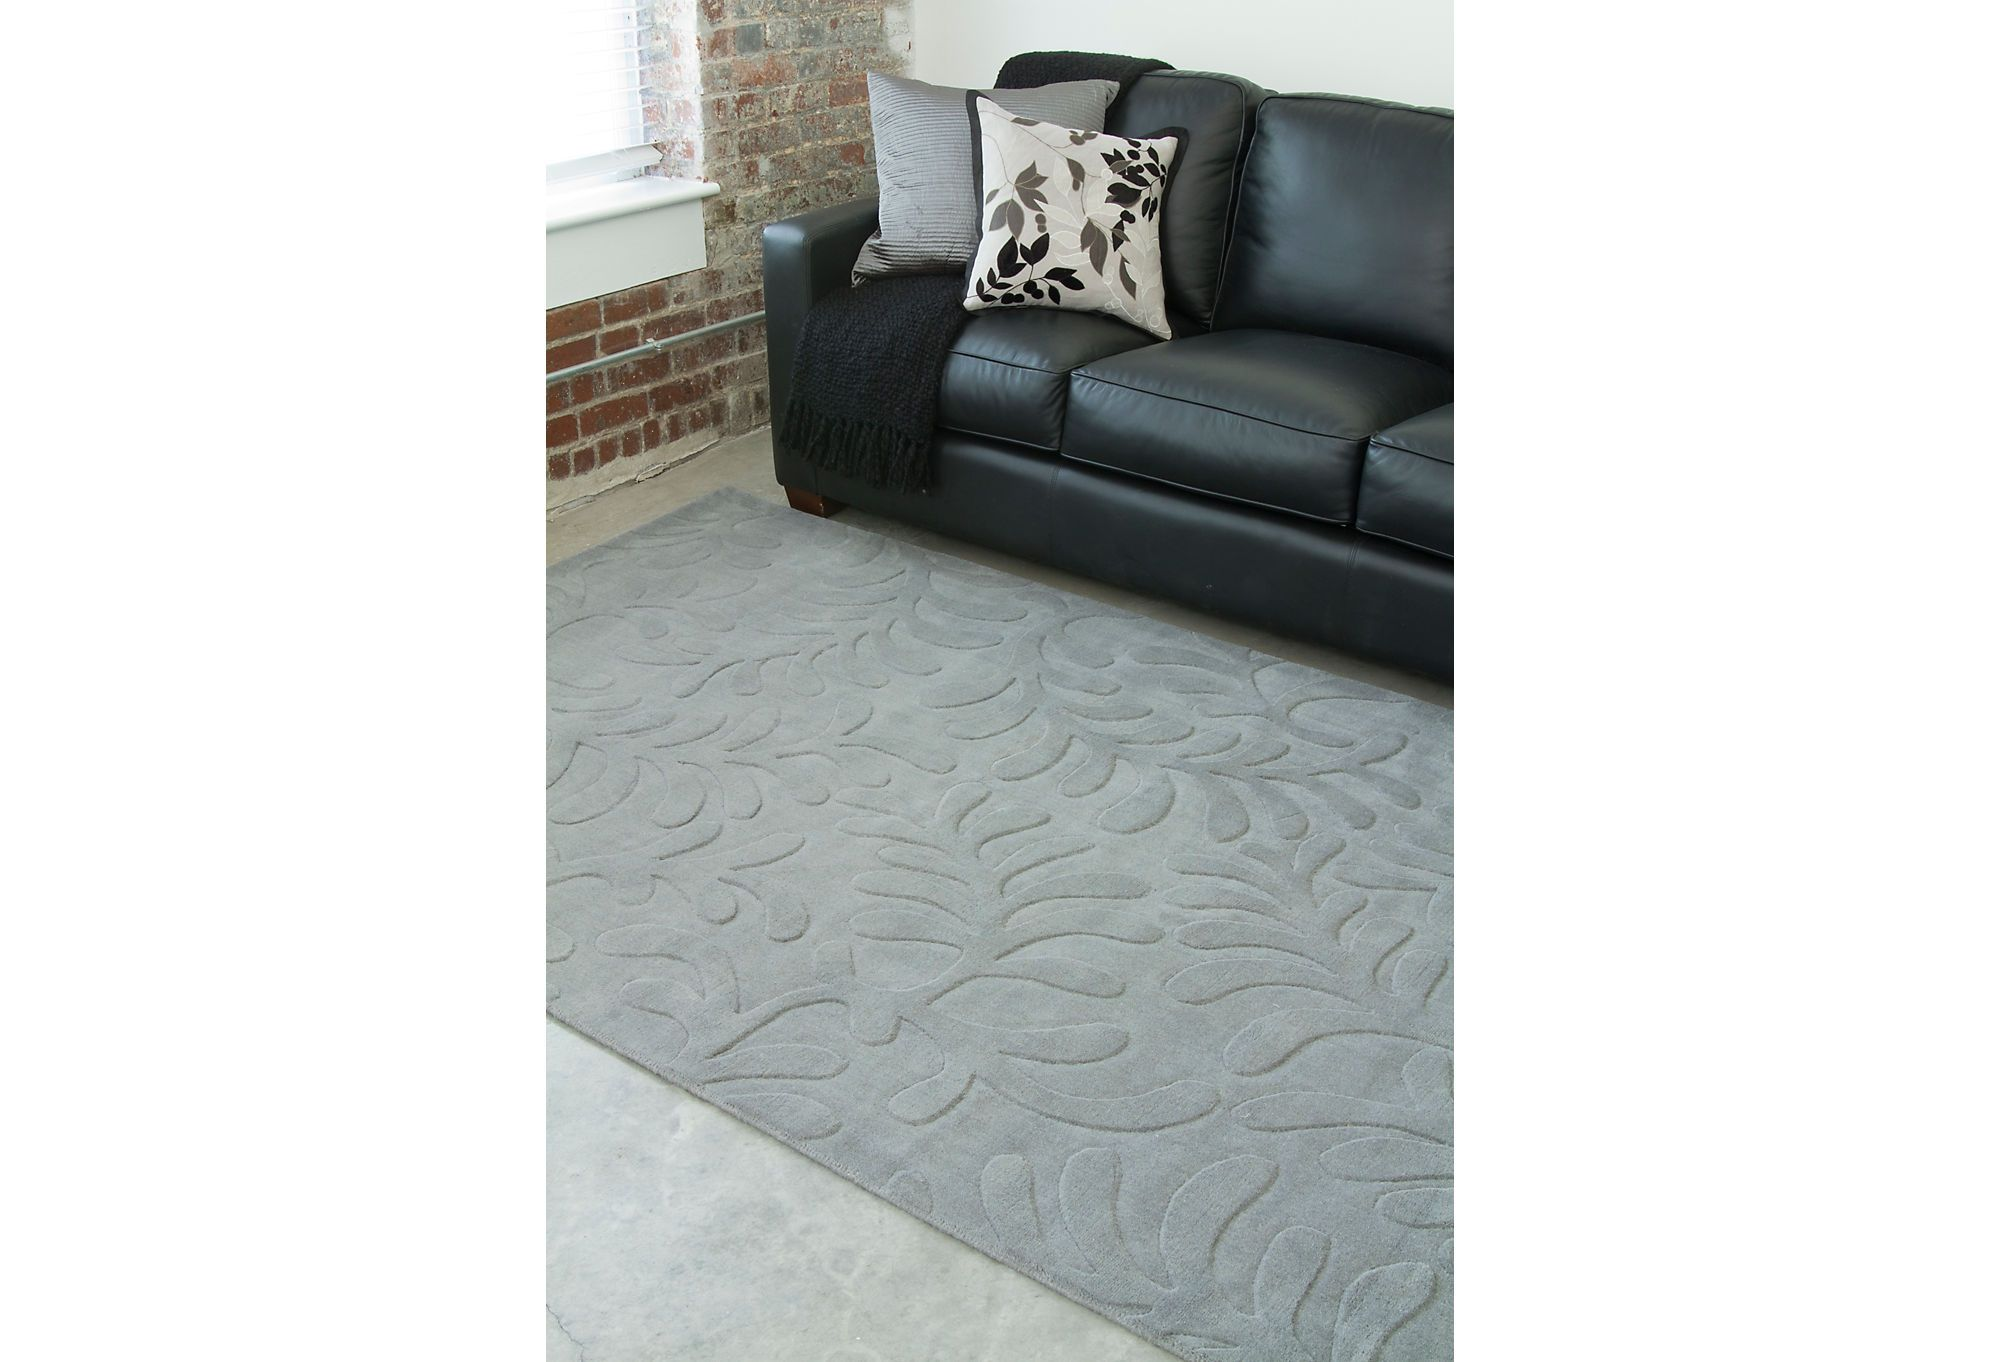 Candice Olson Rugs - Carys Rug, Dove Gray, One Kings Lane.